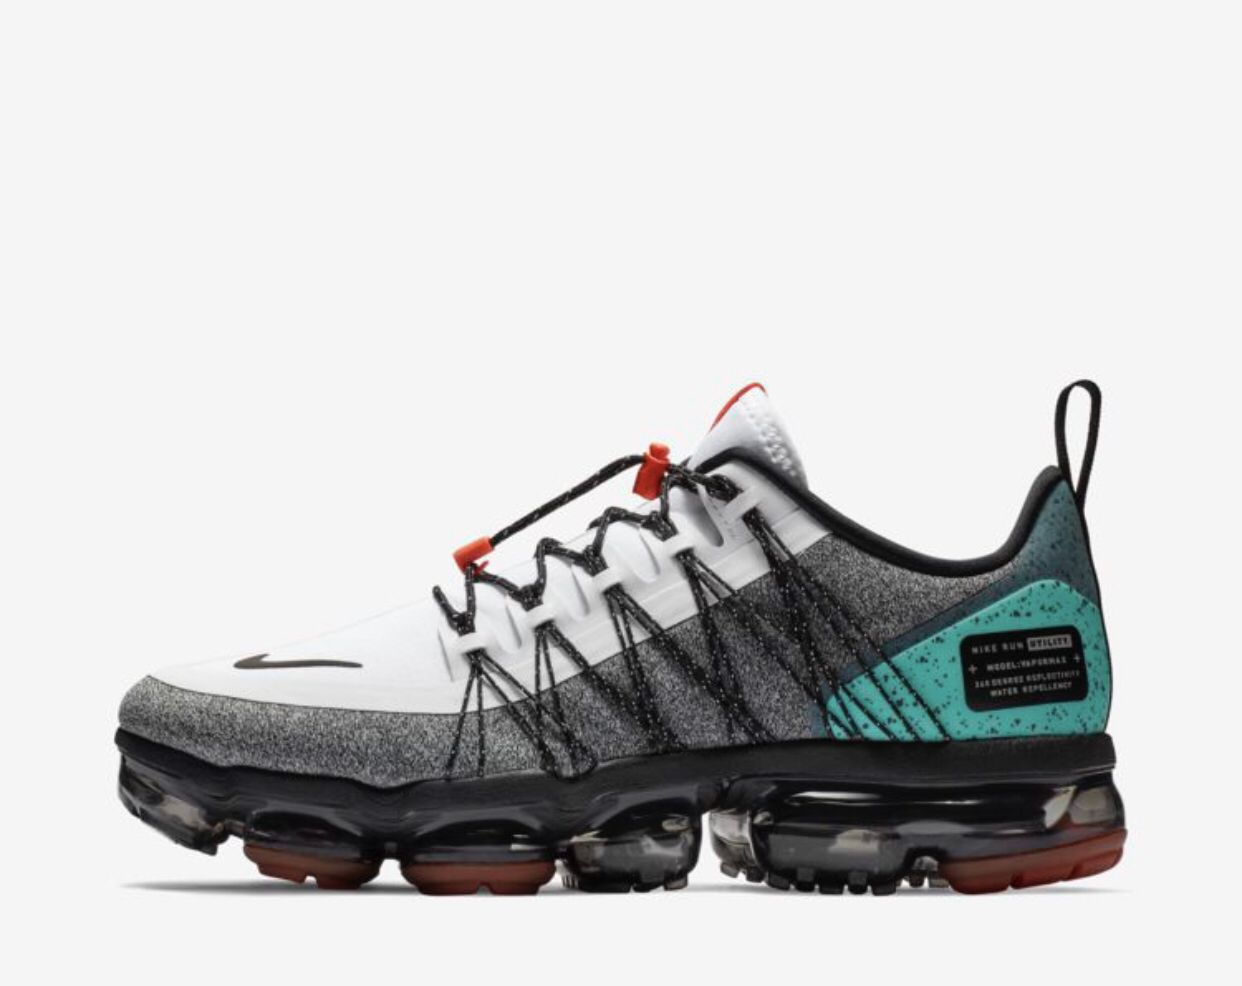 8c417607d8 Nike AirMax vapormax urban bounce 2018 | Shoes in 2019 | Shoes ...